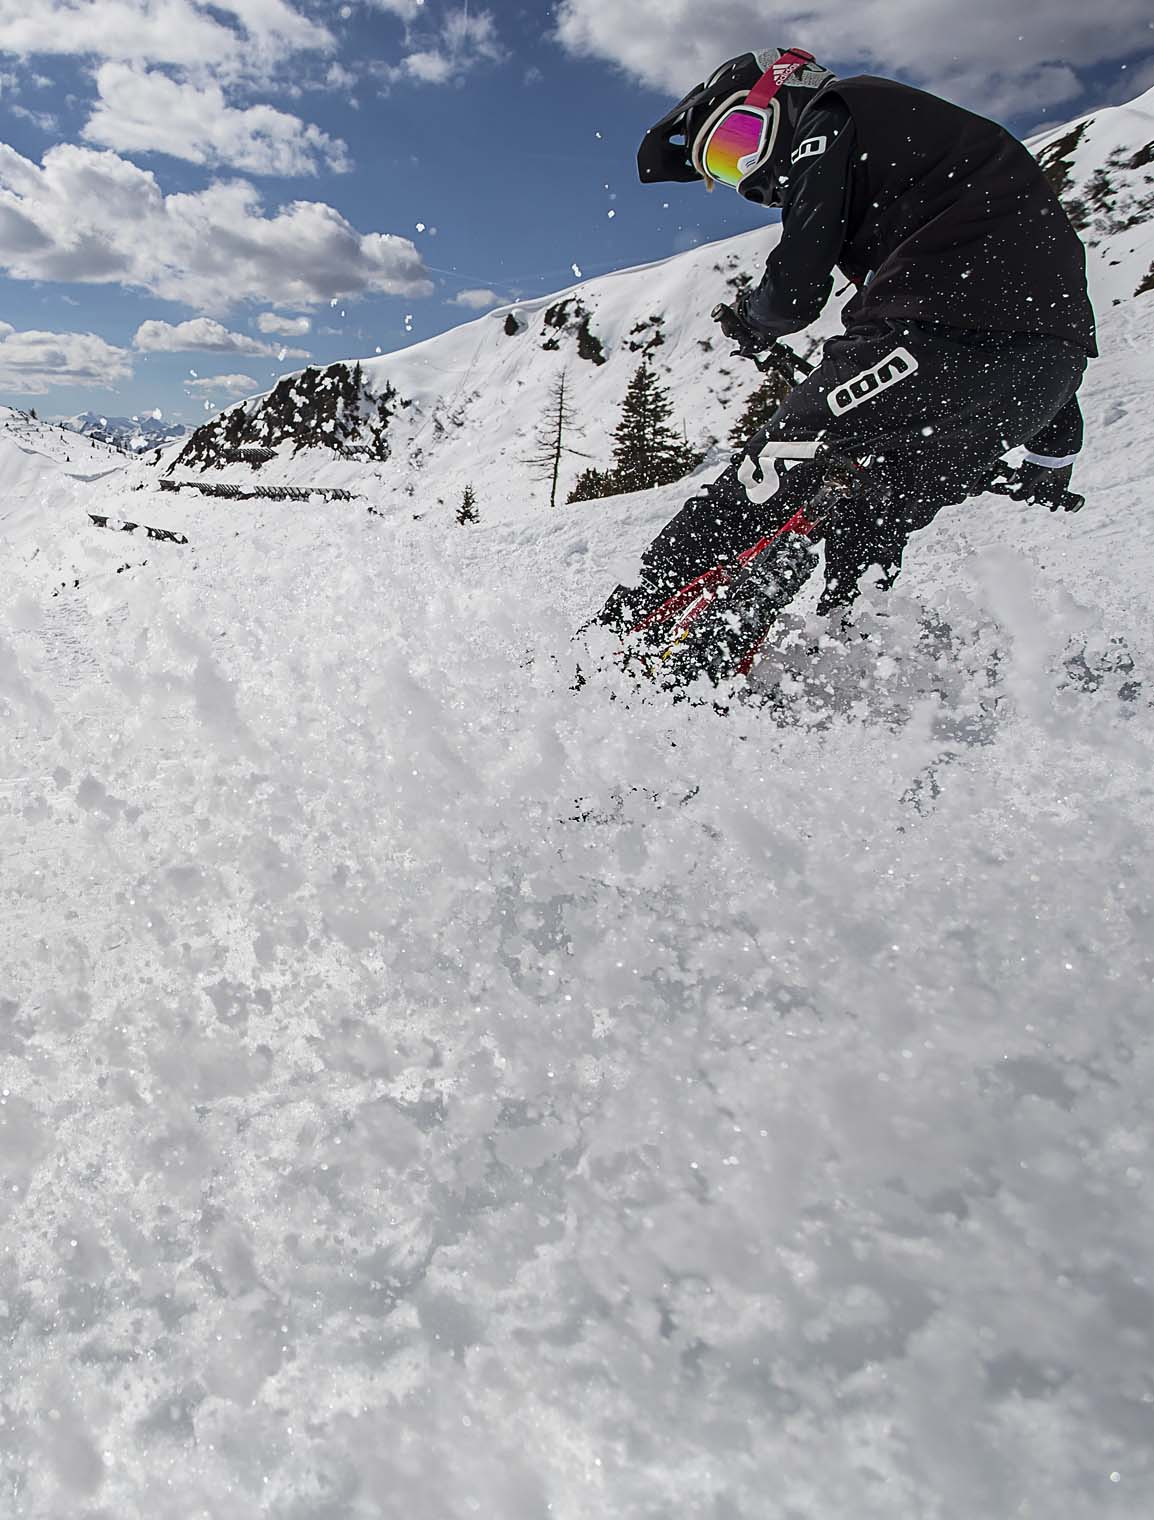 mtb_print_porn_snow_spray_wendi_hirzberger_drift